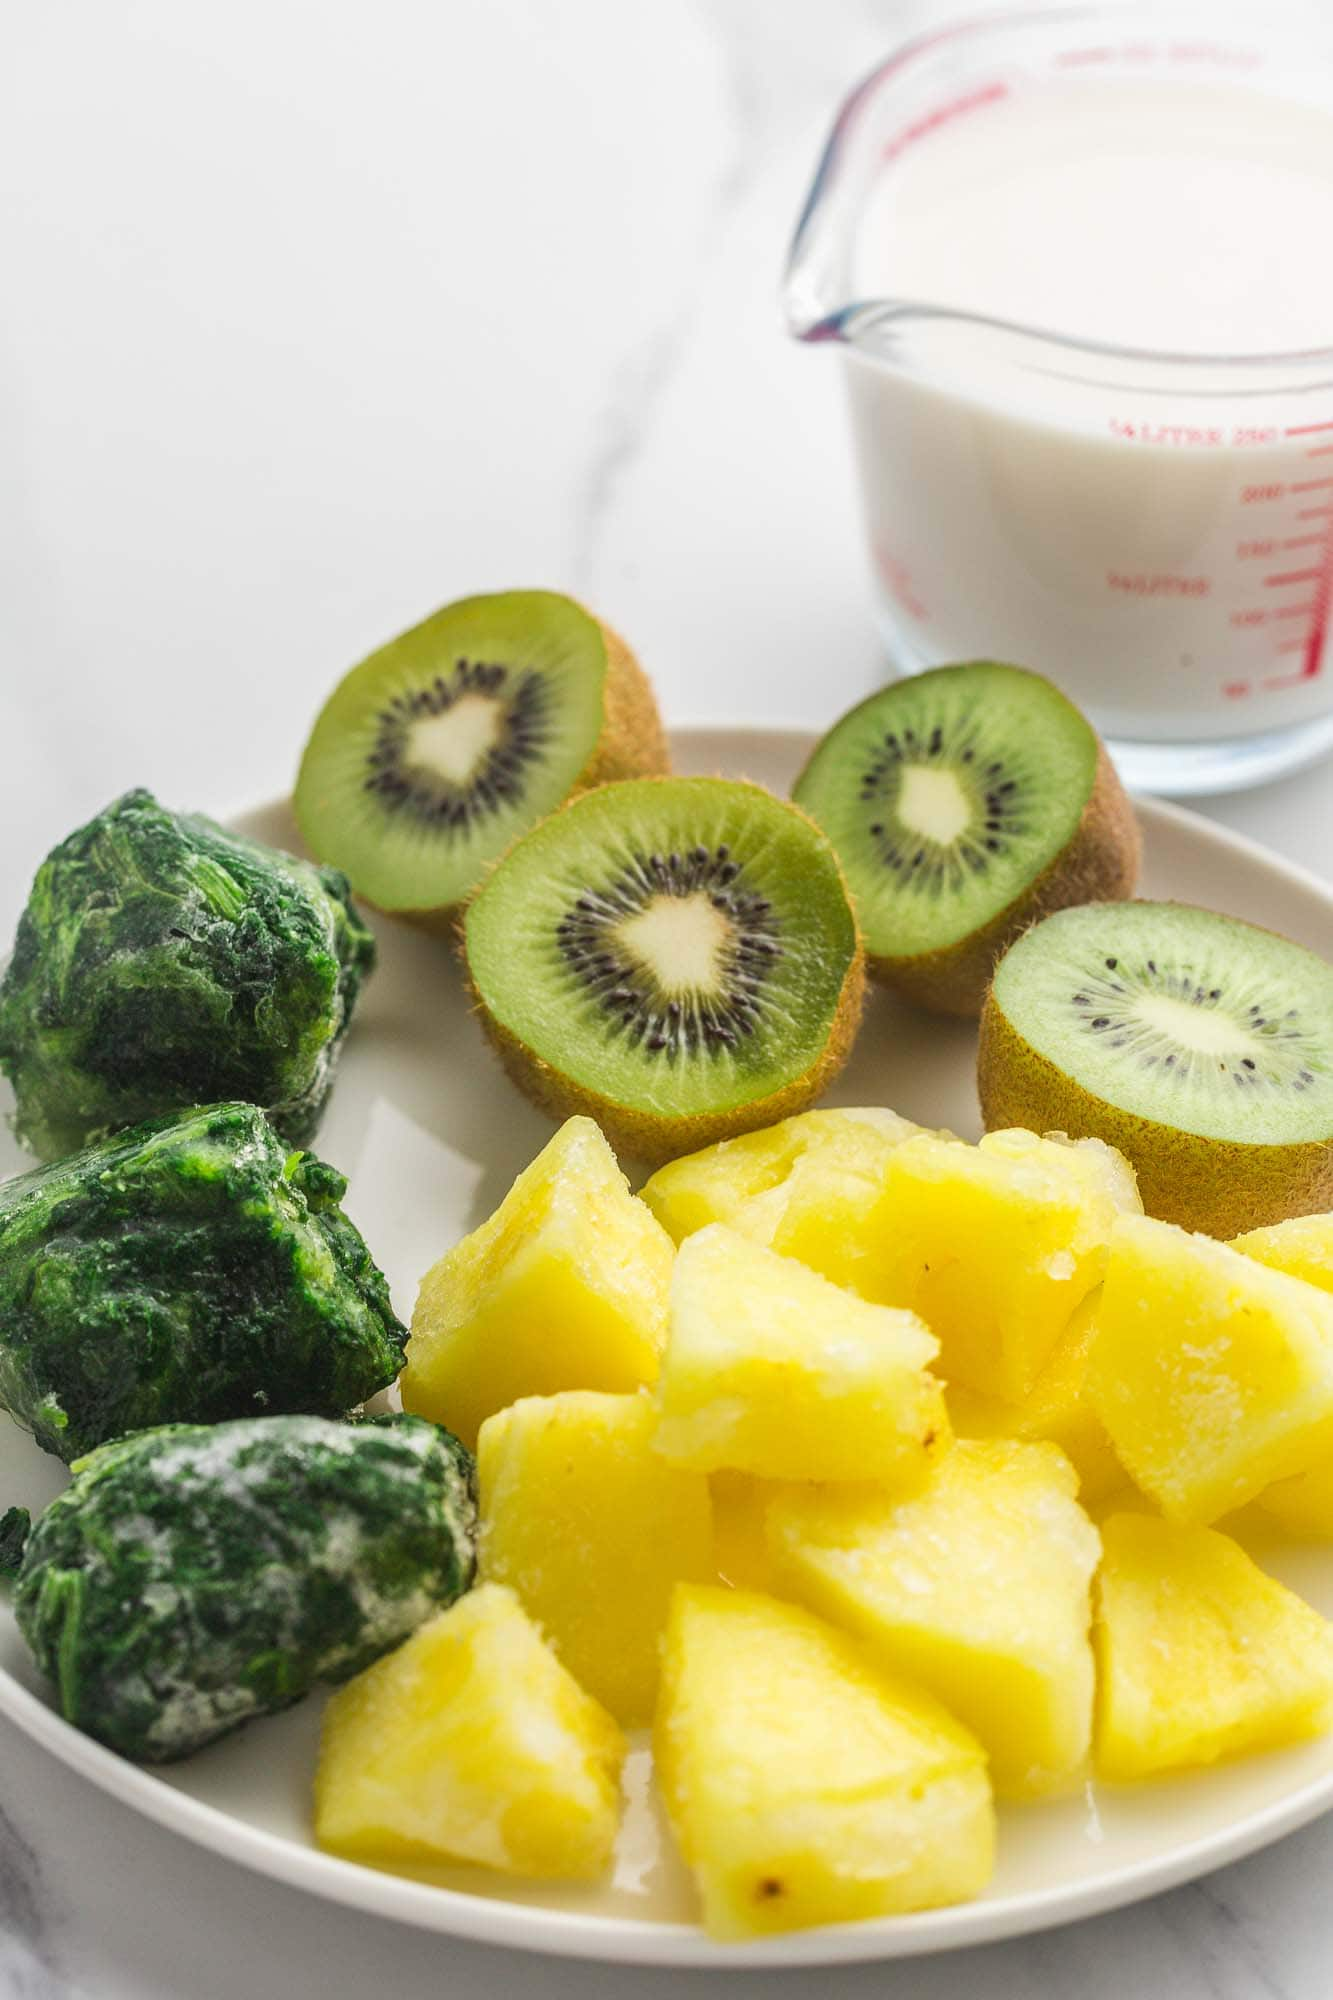 Ingredients needed to make spinach pineapple smoothie: frozen spinach, pineapple, kiwi, and almond milk